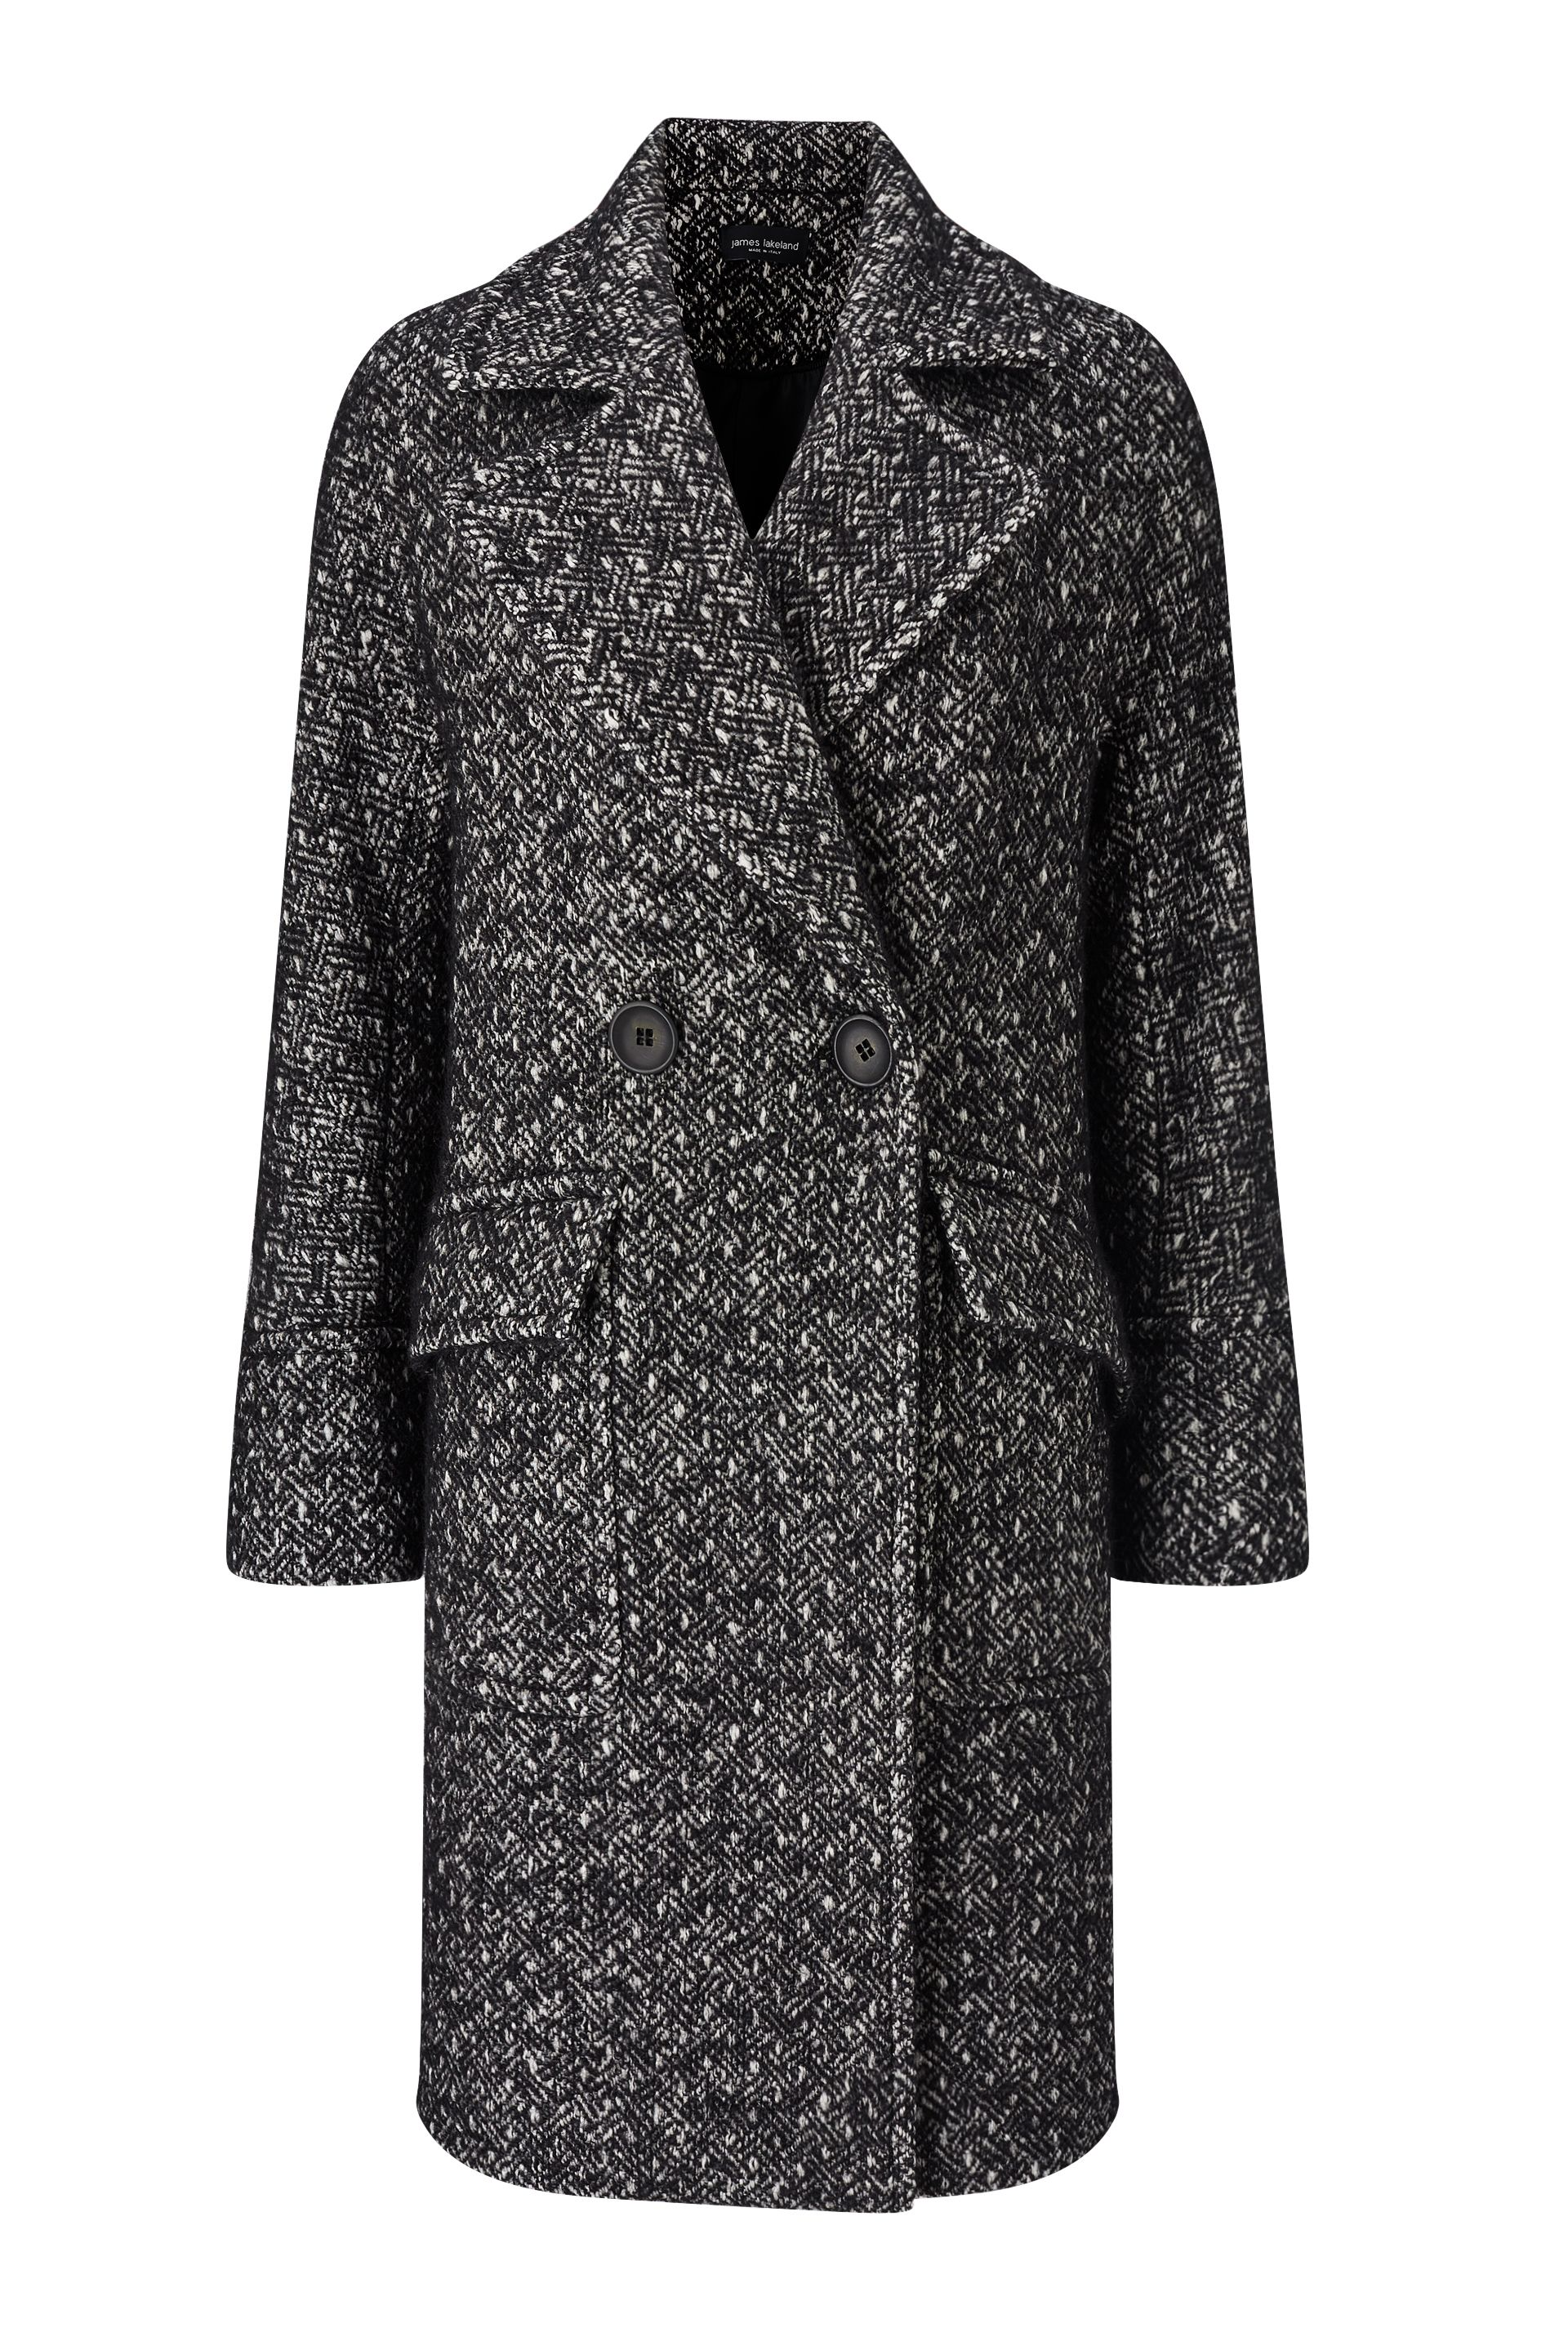 James Lakeland Double Breasted Drop Shoulder Coat, Black